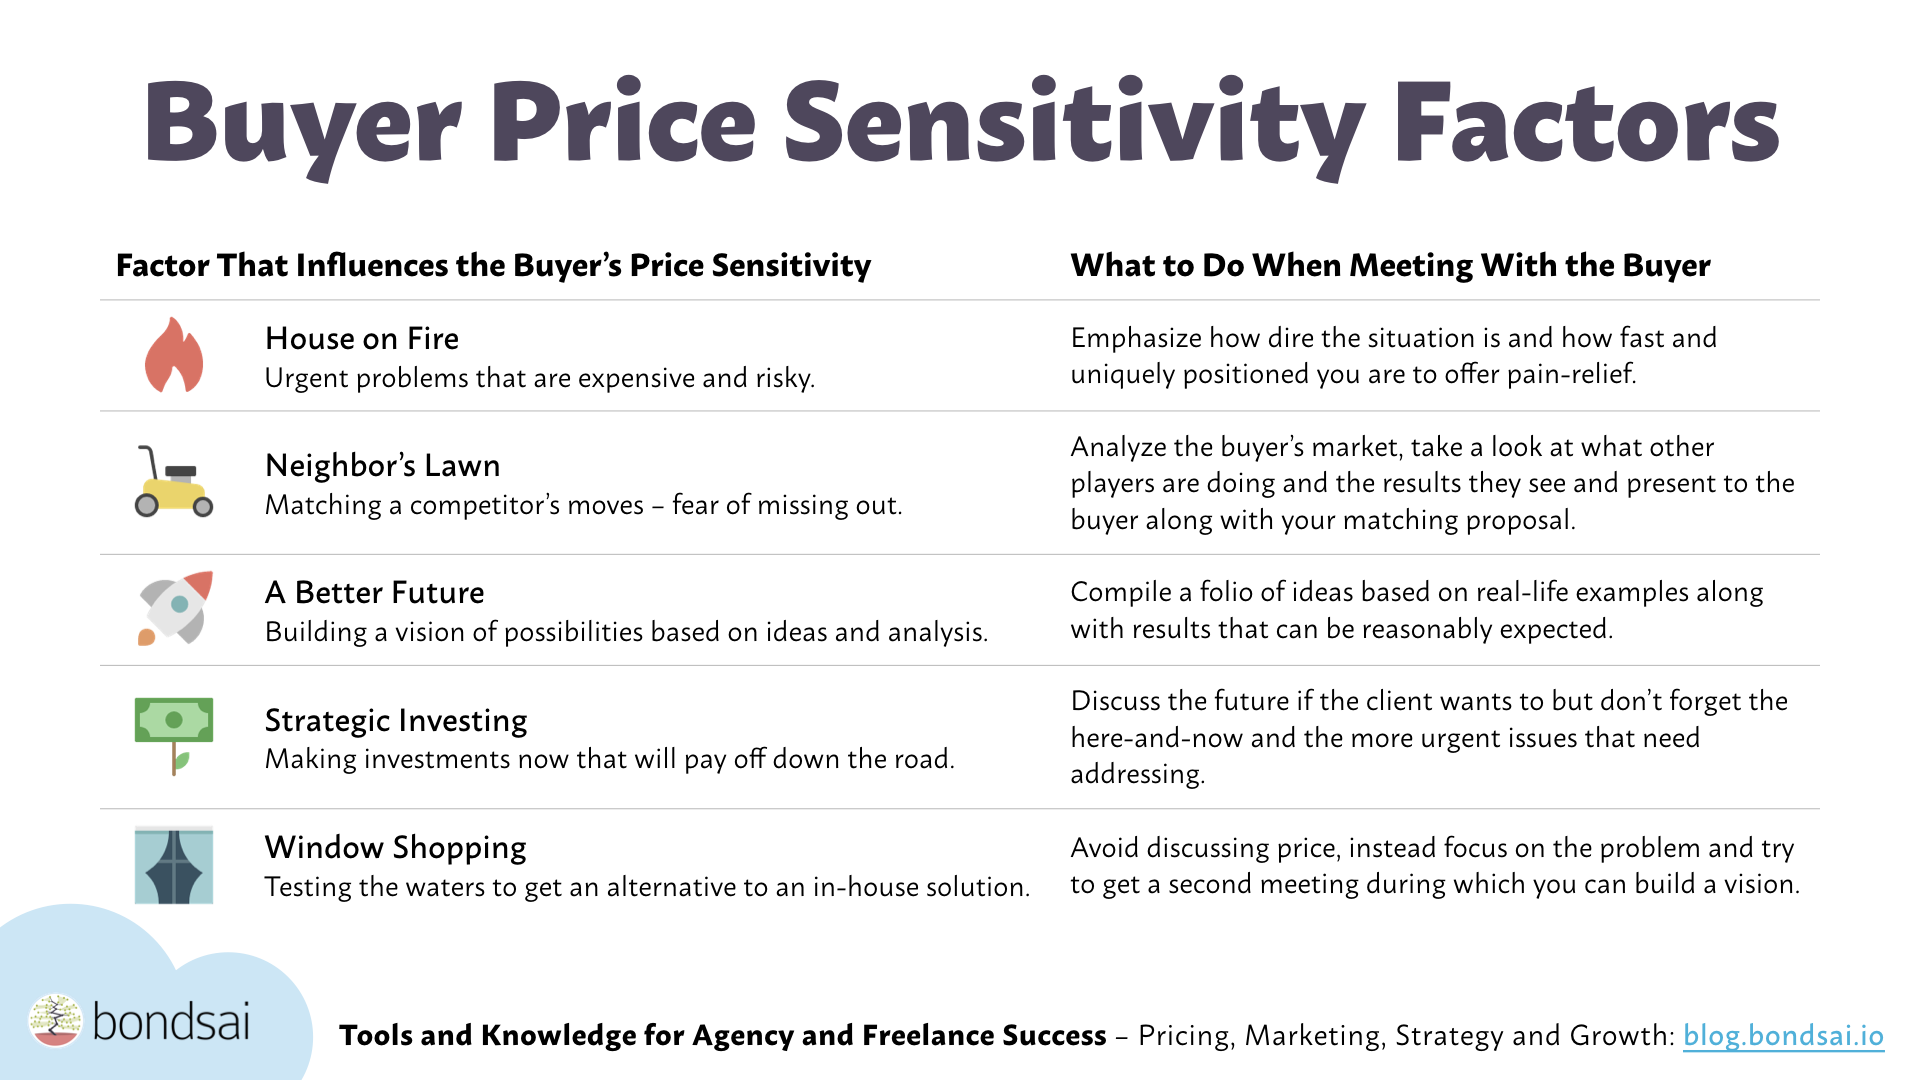 Buyer price sensitivity factors and matching tactics.